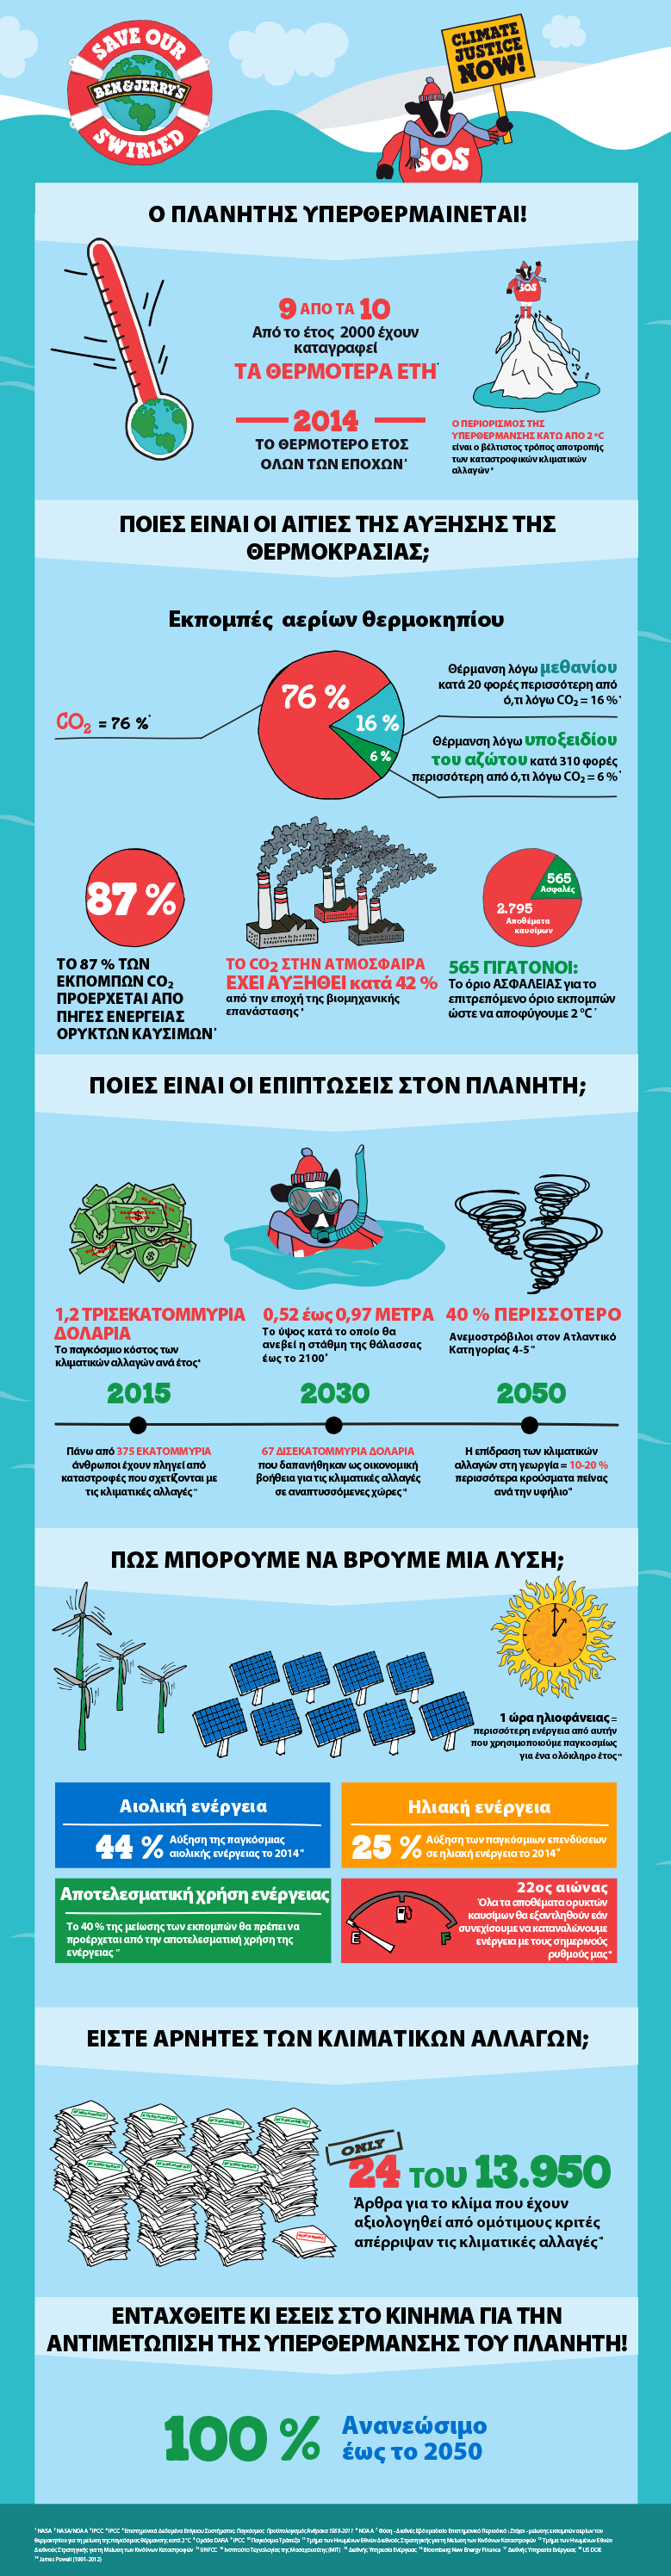 BJ_ClimateChange_Infographic_Greek-(Greece).png